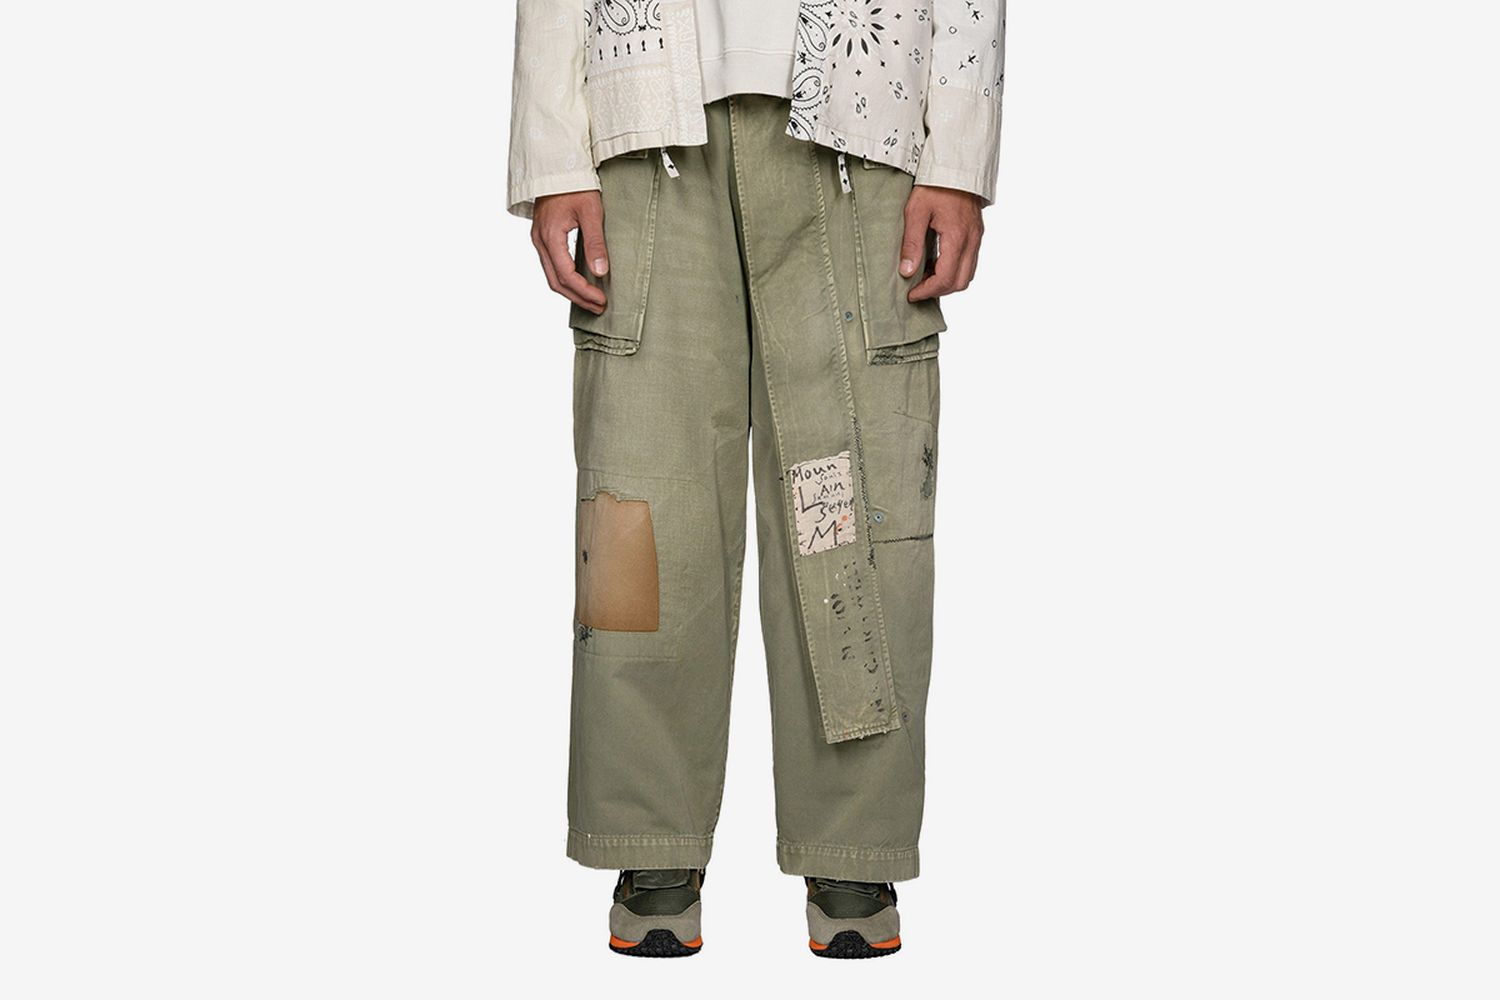 Sleeper Cargo Pants (1 Year Damaged)